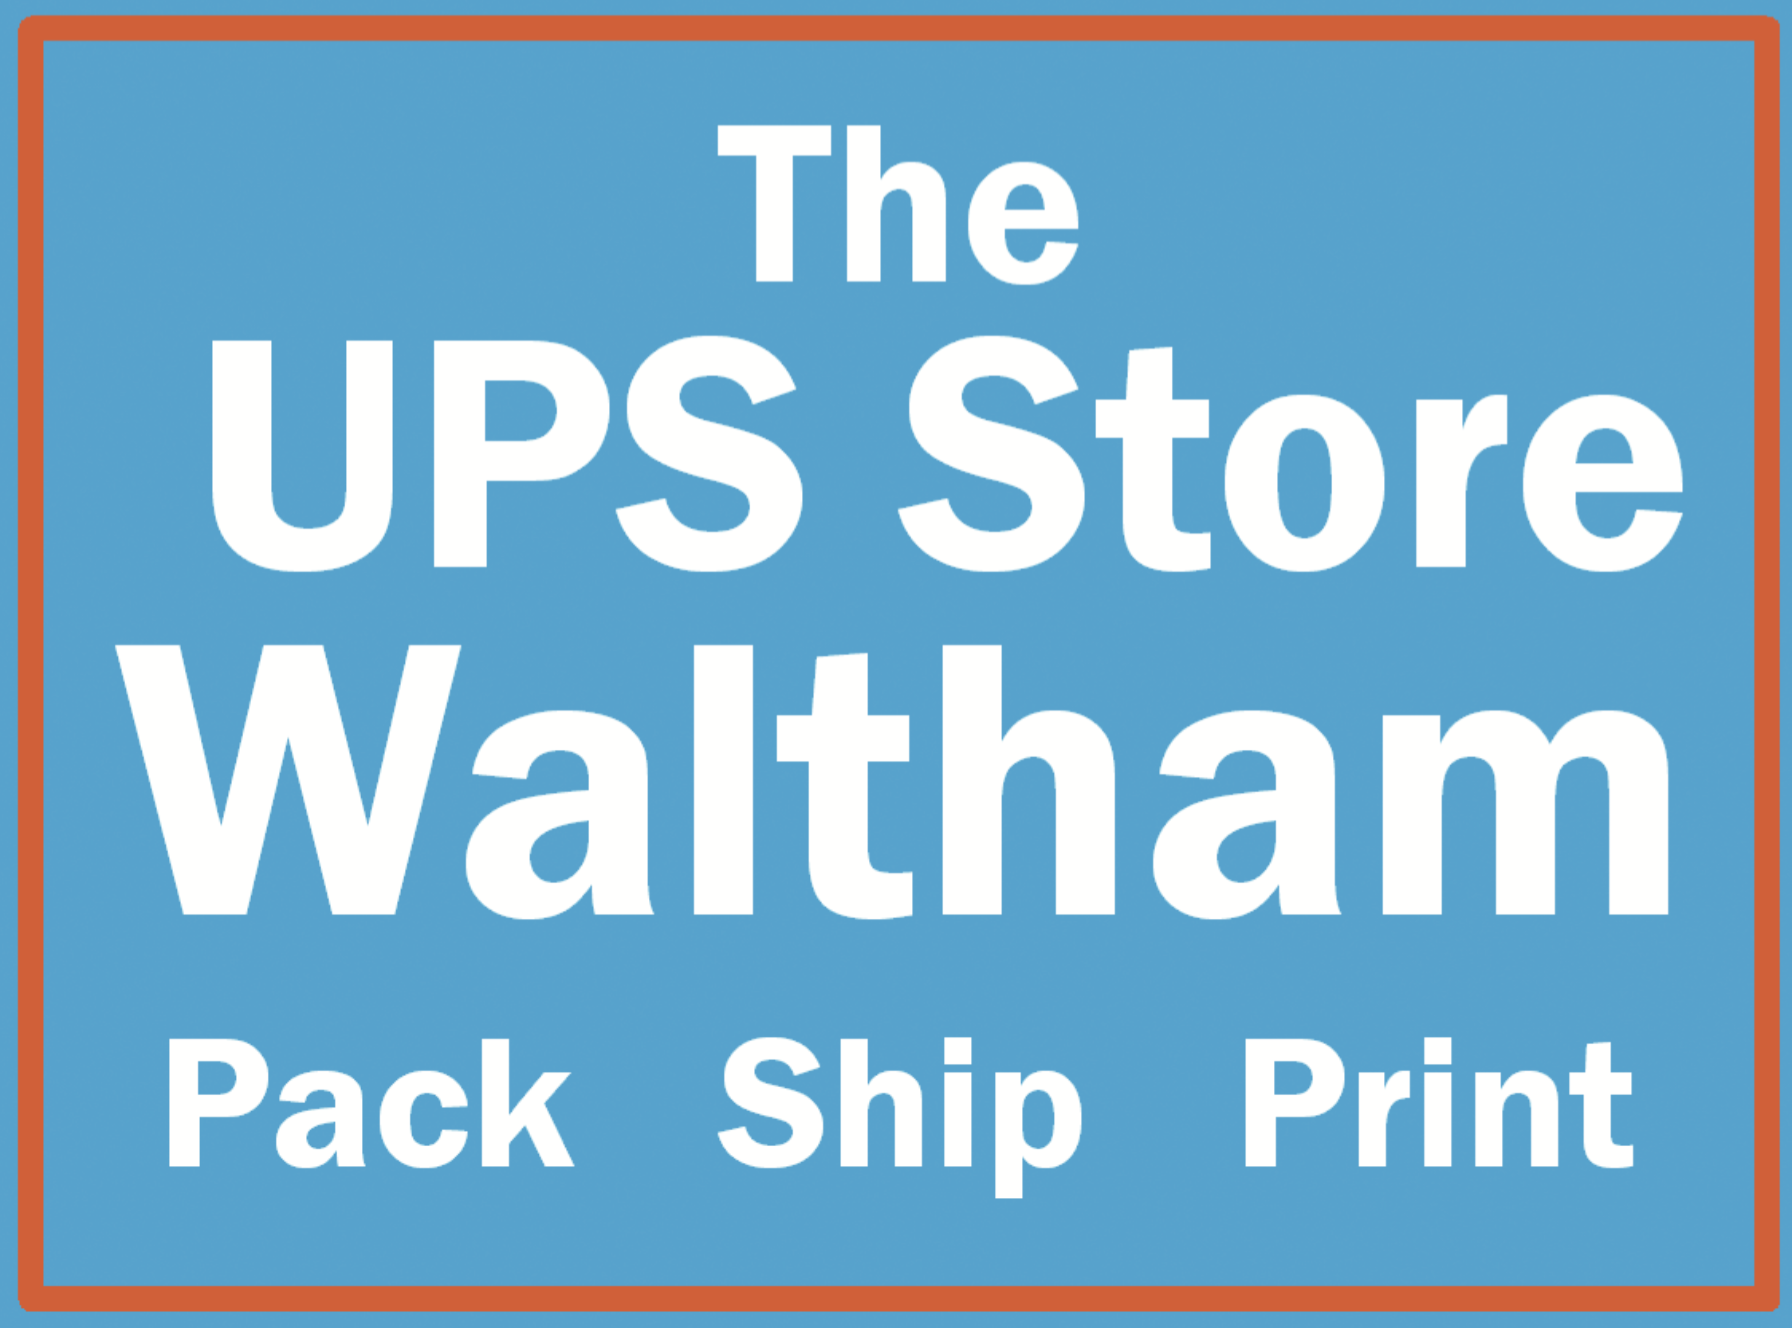 The UPS Store Waltham